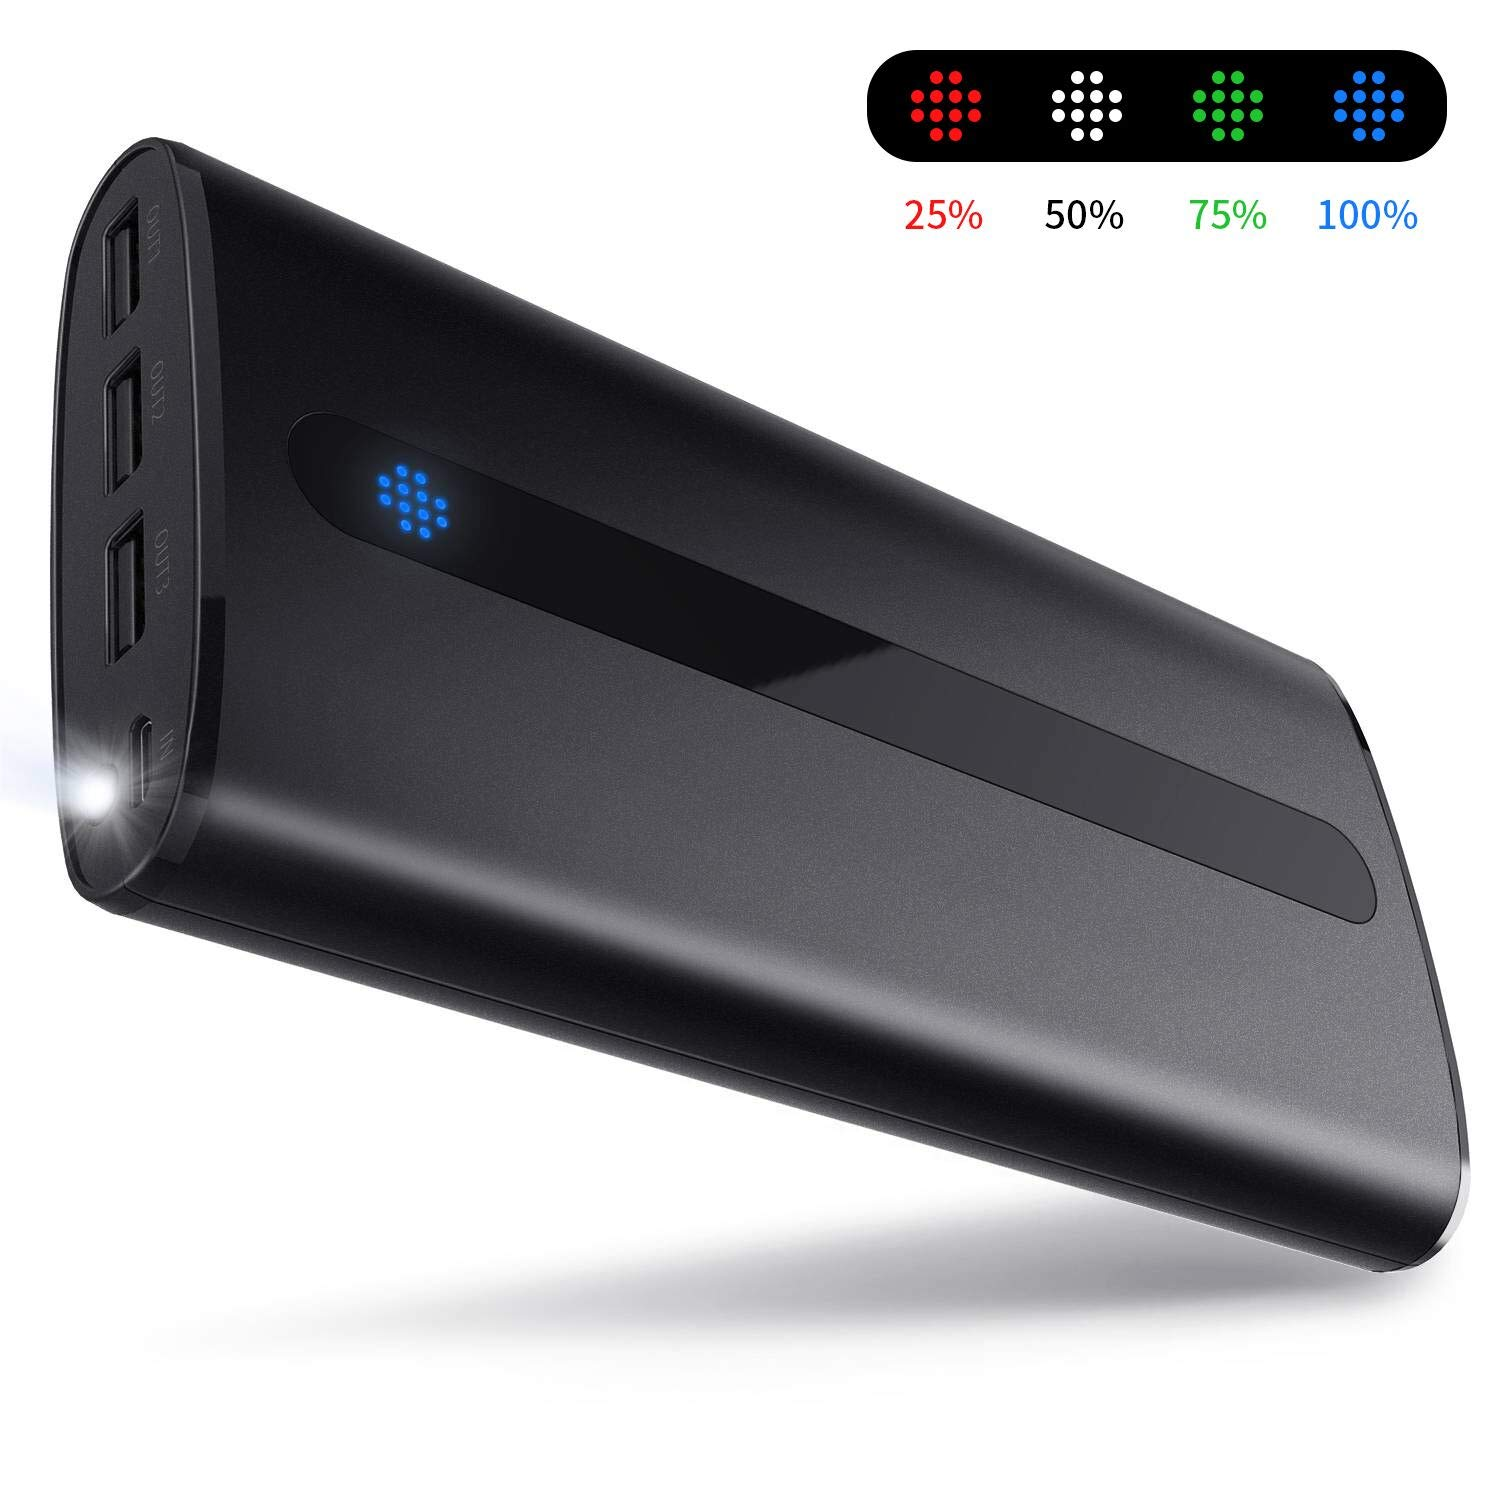 Todamay Power Bank 24000mAh Ultra-Portable Phone Charger External Battery 2.1A Input Port, LED Lights 3 Charging Ports for Smartphone&Other Device, Black